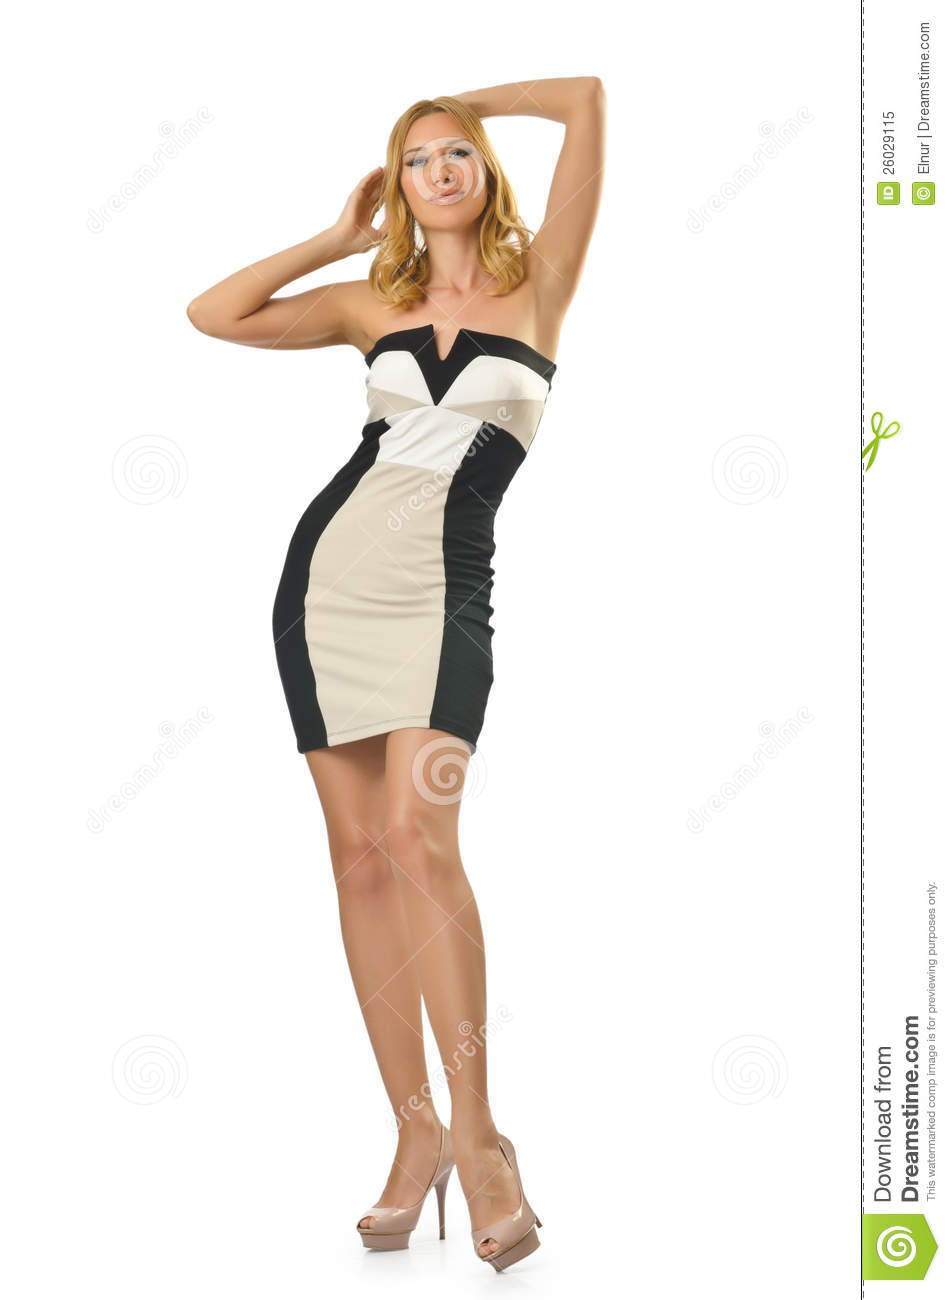 Tall Girl Fashion Concept Royalty Free Stock Photo Image 26029115